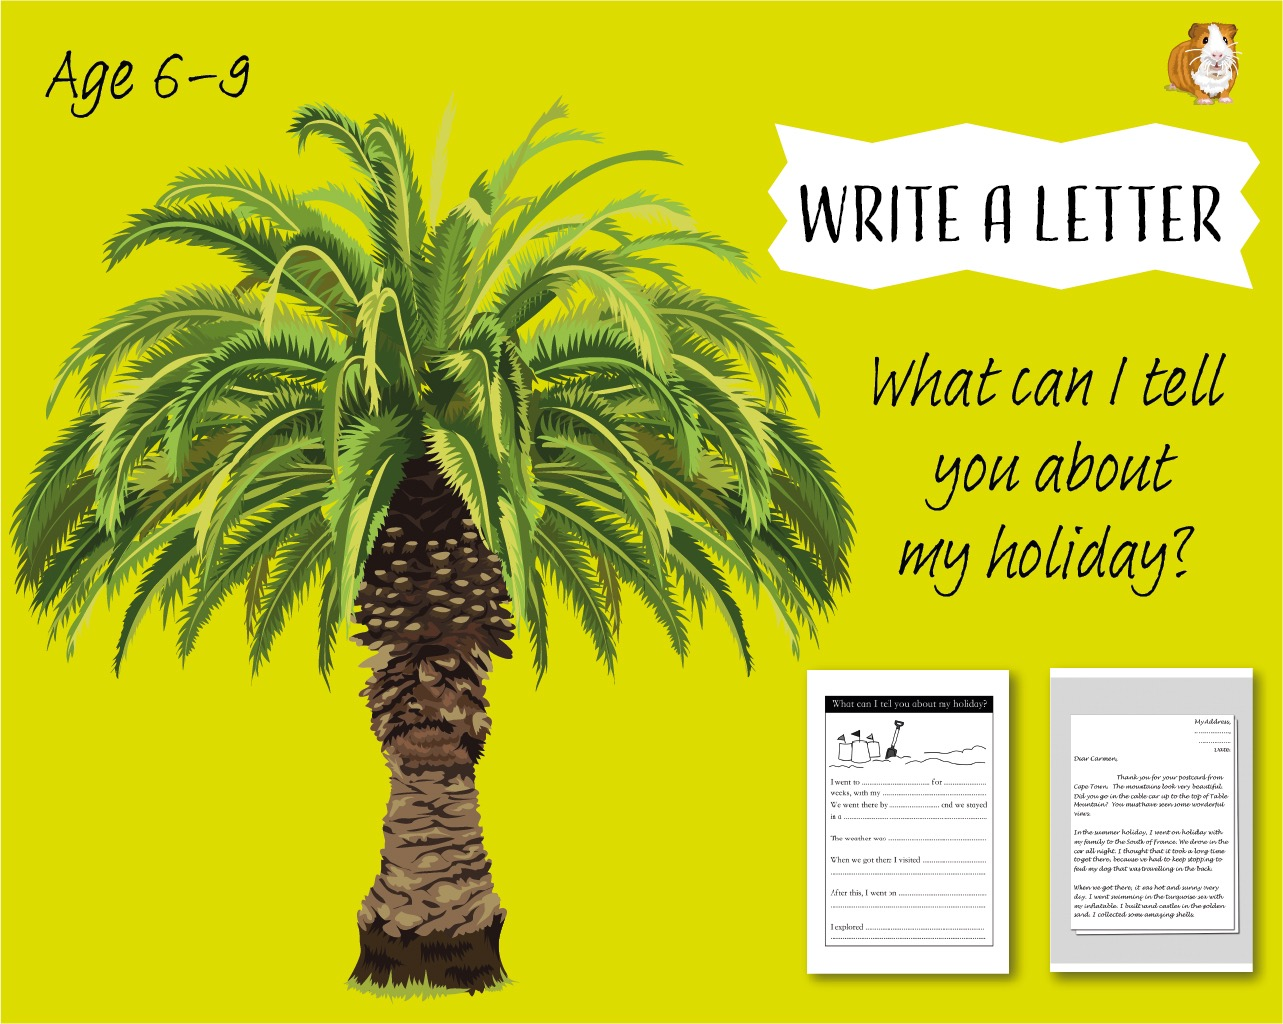 Write A Letter: What Can I Tell You About My Holiday? (6-9 years)